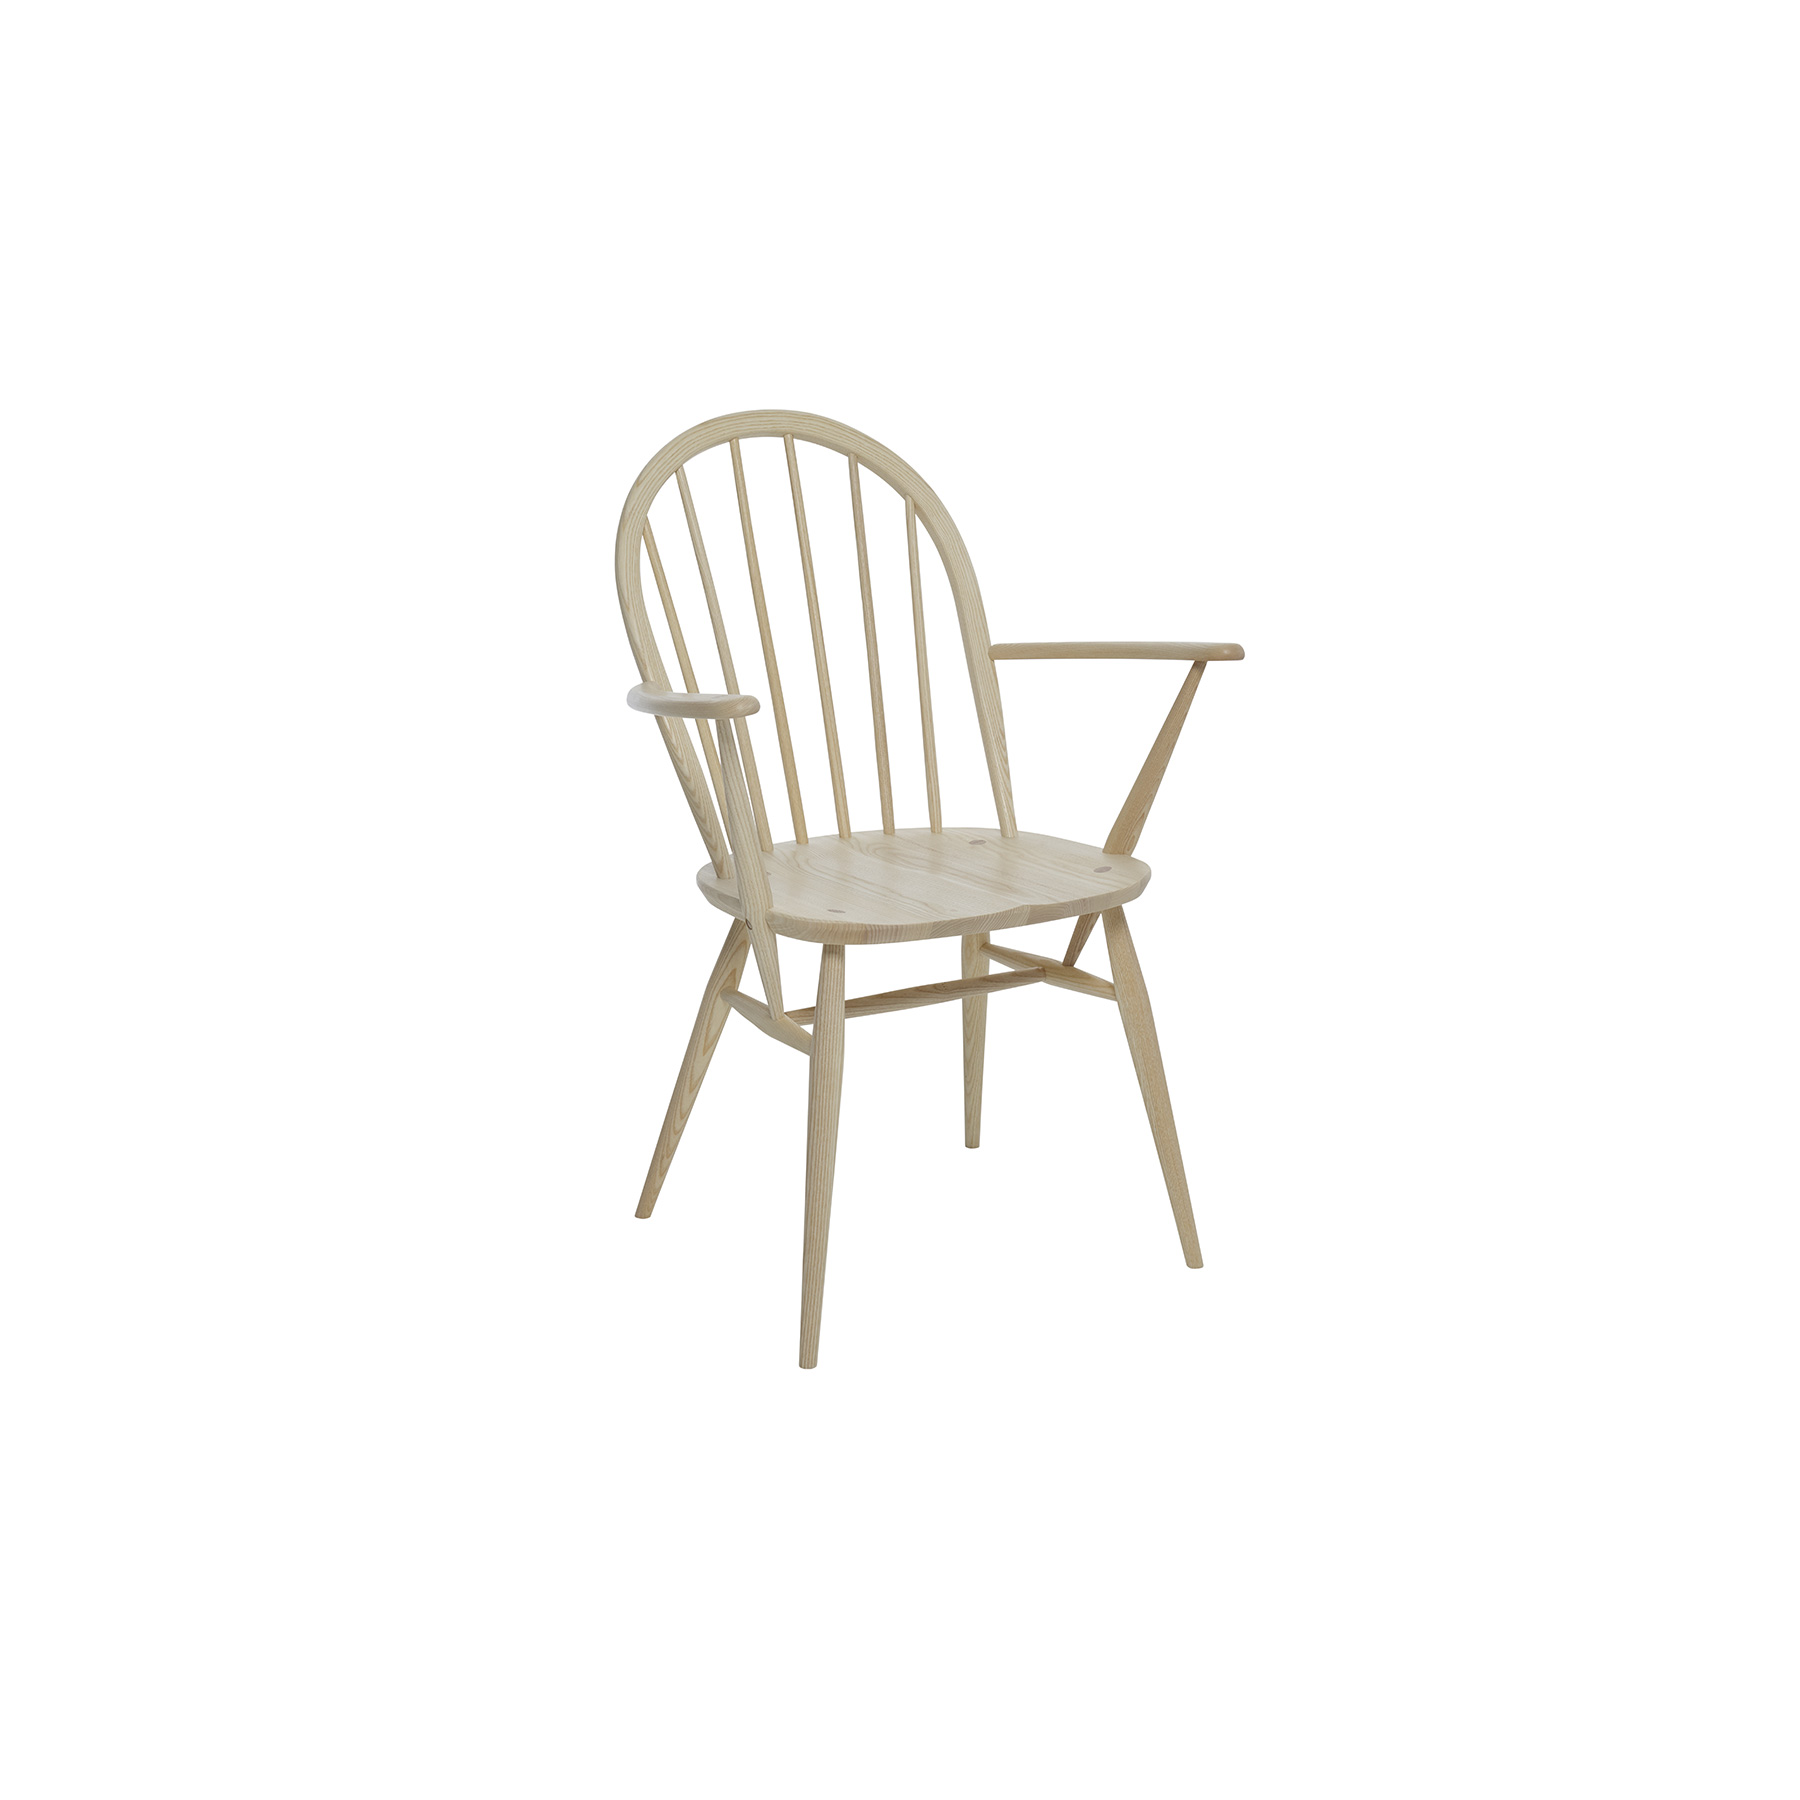 Originals Windsor Dining Armchair - The Ercol Originals are pieces of timeless and classic design that never date or show their age. It is furniture that is as relevant and as functional now as it was when it was created in the 1950s and 1960s. This furniture was designed by ercol's founder, Lucian Ercolani, who drew for his inspiration on the time proven local design and craft in the Chiltern Hills around where he lived and built his first factory in 1920 in High Wycombe. Using the strength of beech and the beauty of elm he carried this definition on into a huge variety of dining, kitchen, and school chairs and then extended the idiom into the low easy chair range epitomised by the 206 armchair and the studio couch. The beauty of the colour and the grain of the elm took Lucian on to use elm for the tables and cabinets of the Originals and the following Windsor range. The gracefully turned legs and spindle details are signature features of the traditional Windsor chair and help to create a wonderfully classic look in any room. Armrests provide added support so that you can enjoy your dinner in absolute comfort, whilst the contouring to the seat gives added comfort. The chair bow is steam bent from a single straight ash rail and then sanded and shaped to give its subtle and elegant profile. Traditional wedge joints, where the legs come right through the seat and a wedge is then inserted into a cut, before the leg stump is hand sanded flush with the seat, both provide a lovely design detail and a very strong joint.  Further strength is provided by the H-underframe. This Windsor ash dining chair will be finished in your choice from a selection of lacquer colours that both protects the timber, whilst enabling you to choose the look to match your style and décor.   | Matter of Stuff